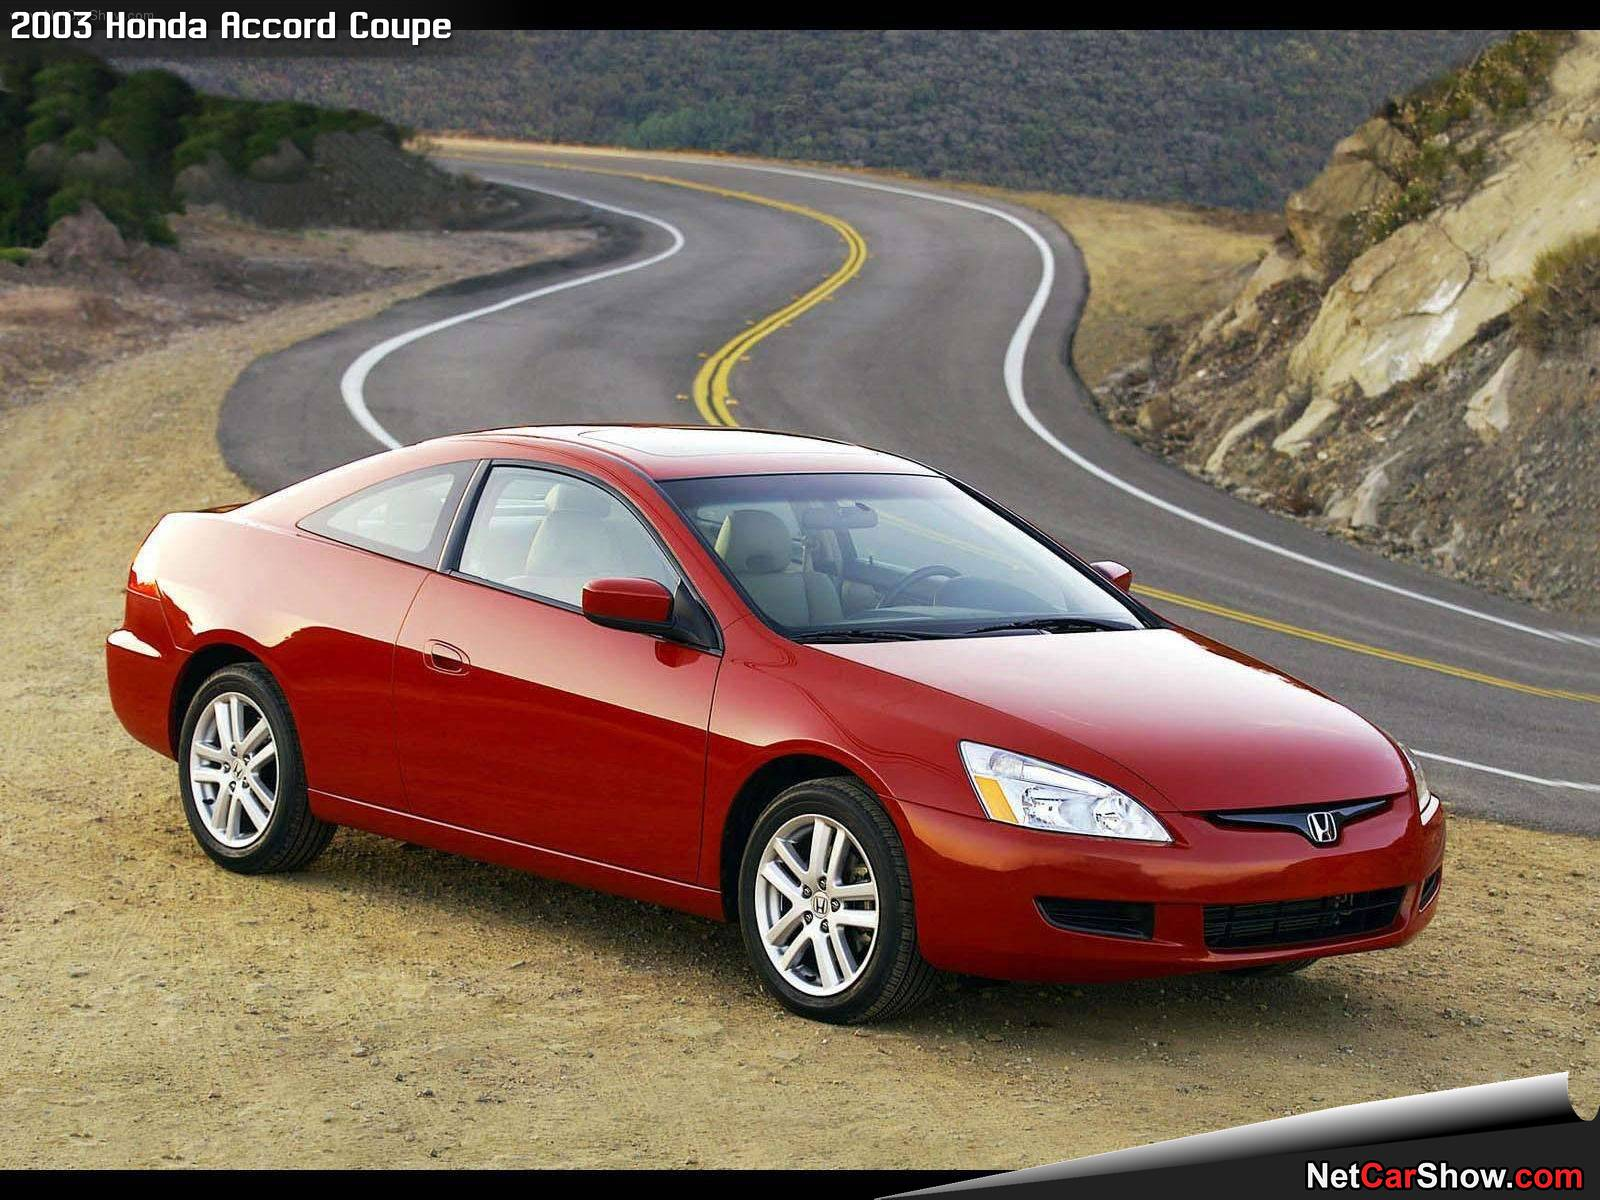 Honda_accord_%d0%ba%d1%83%d0%bf%d0%b5_original